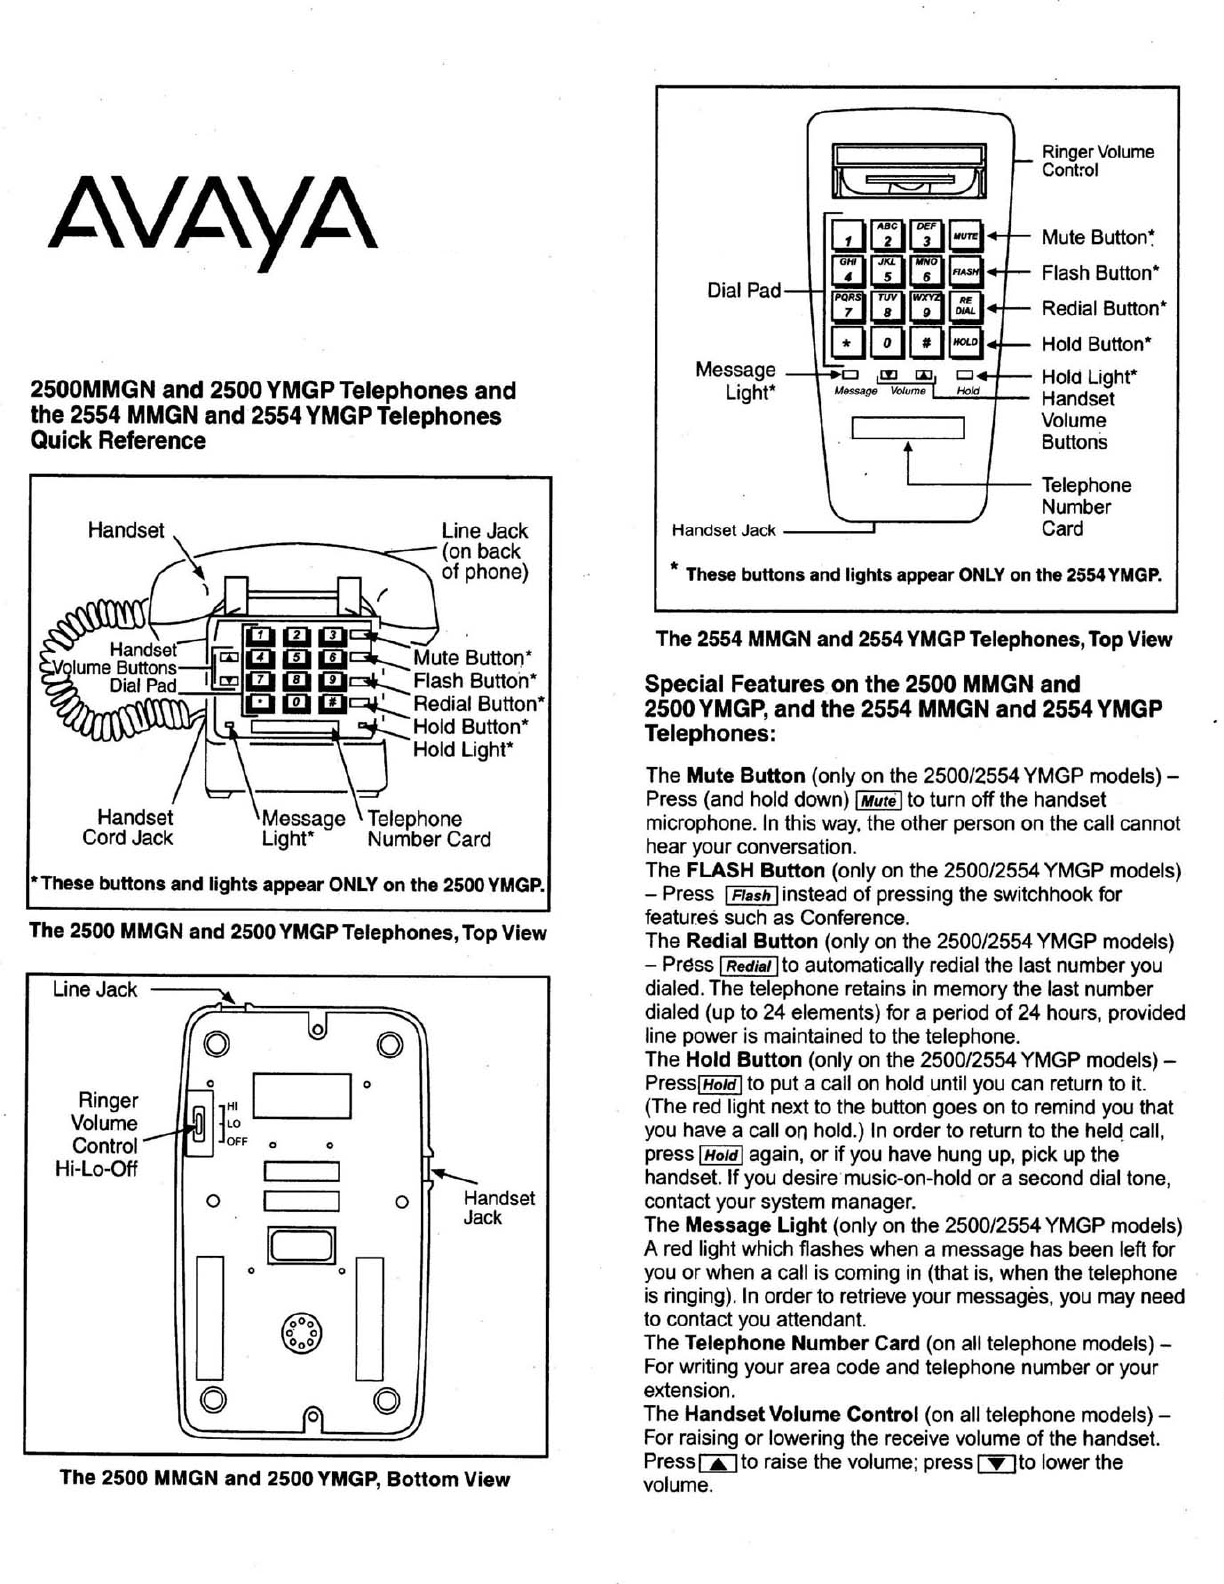 avaya cordless telephone 2500 ymgp user guide manualsonline com rh phone manualsonline com Avaya 9611G IP Phone Avaya 9611G IP Phone